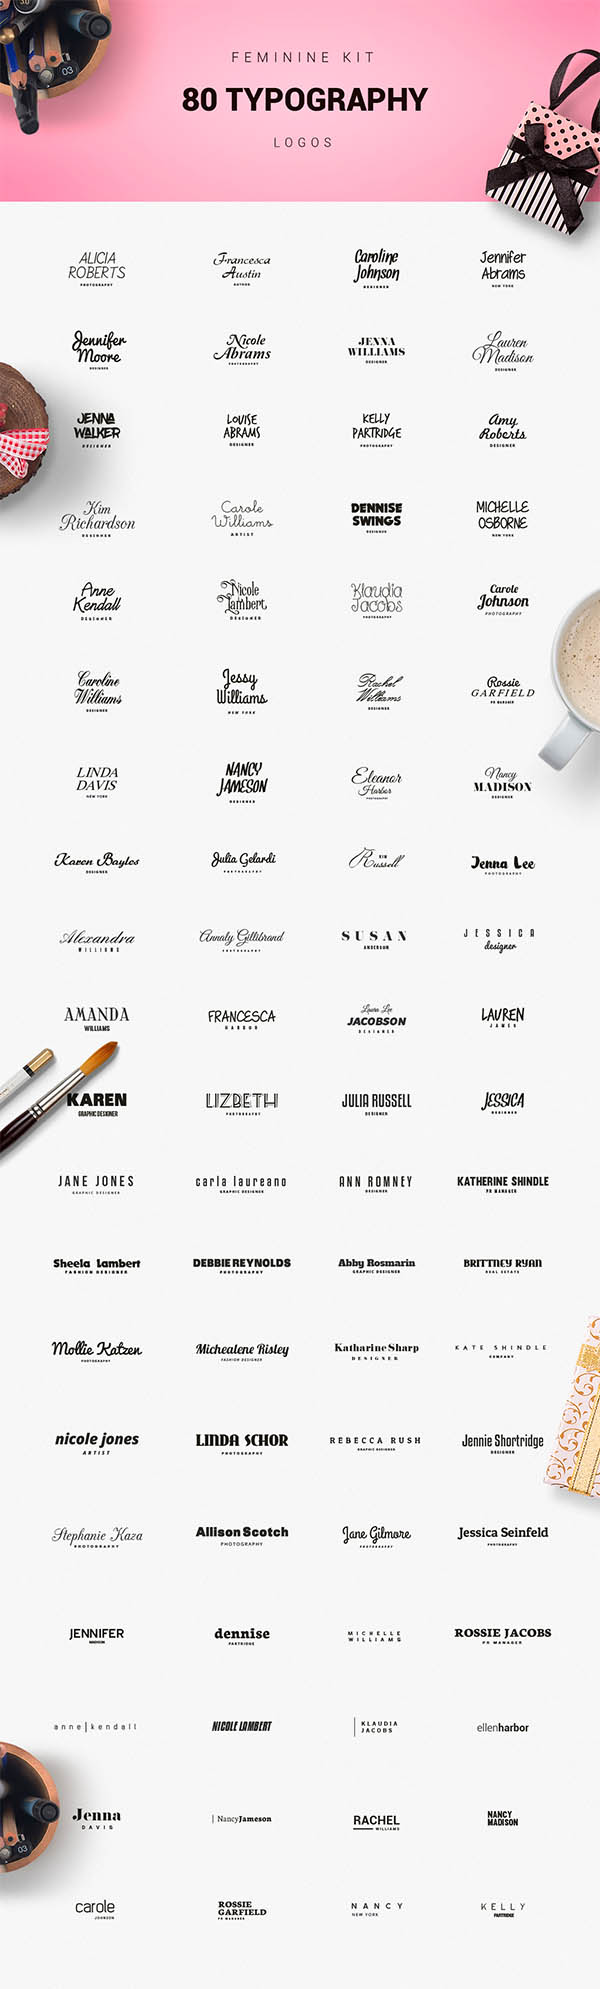 900+ Amazing Logos Bundle Available in .AI & .PSD - 15